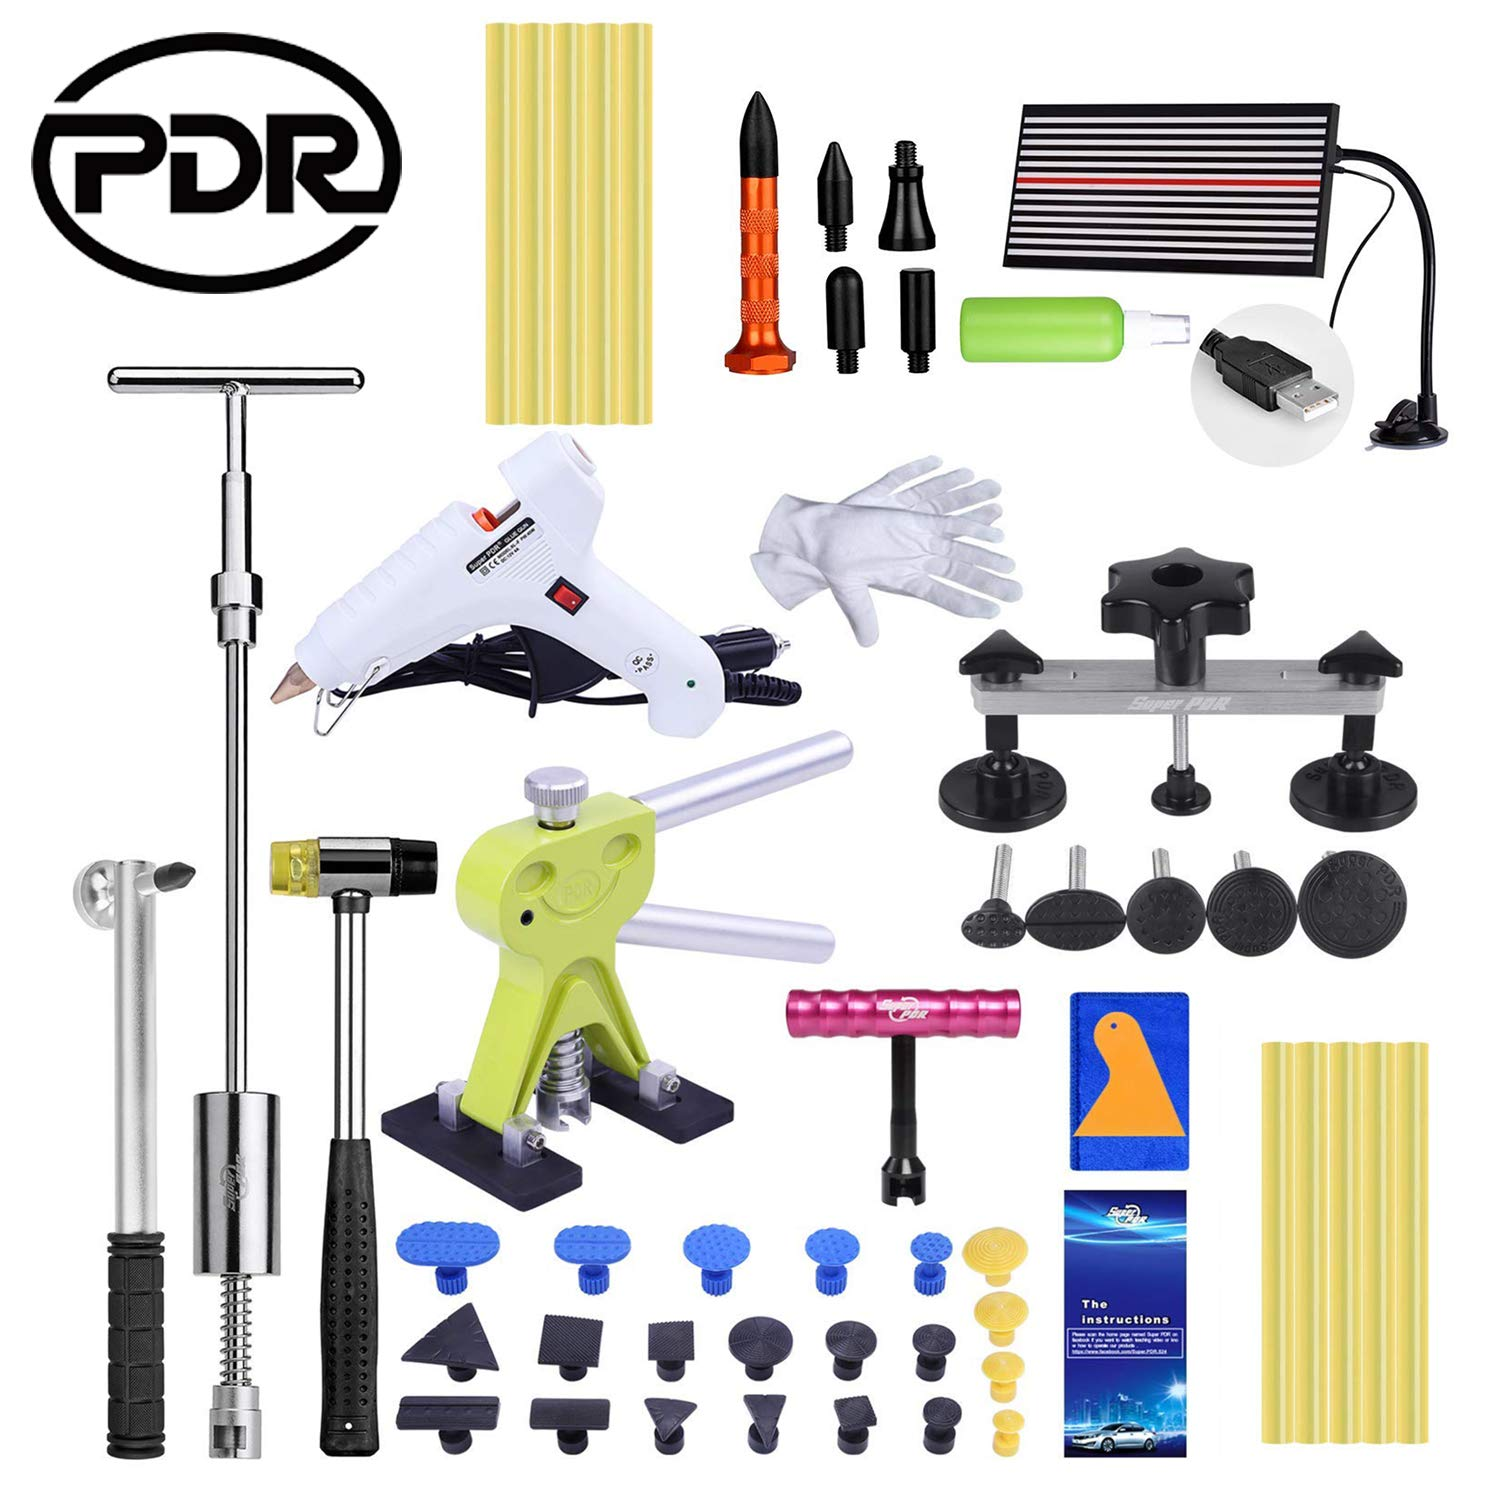 PDR Paintless Dent Repair Tool, Auto 47 Pcs Car Dent Removal Kit, DIY Dent Remover for Car Body, Washing machine and Doors